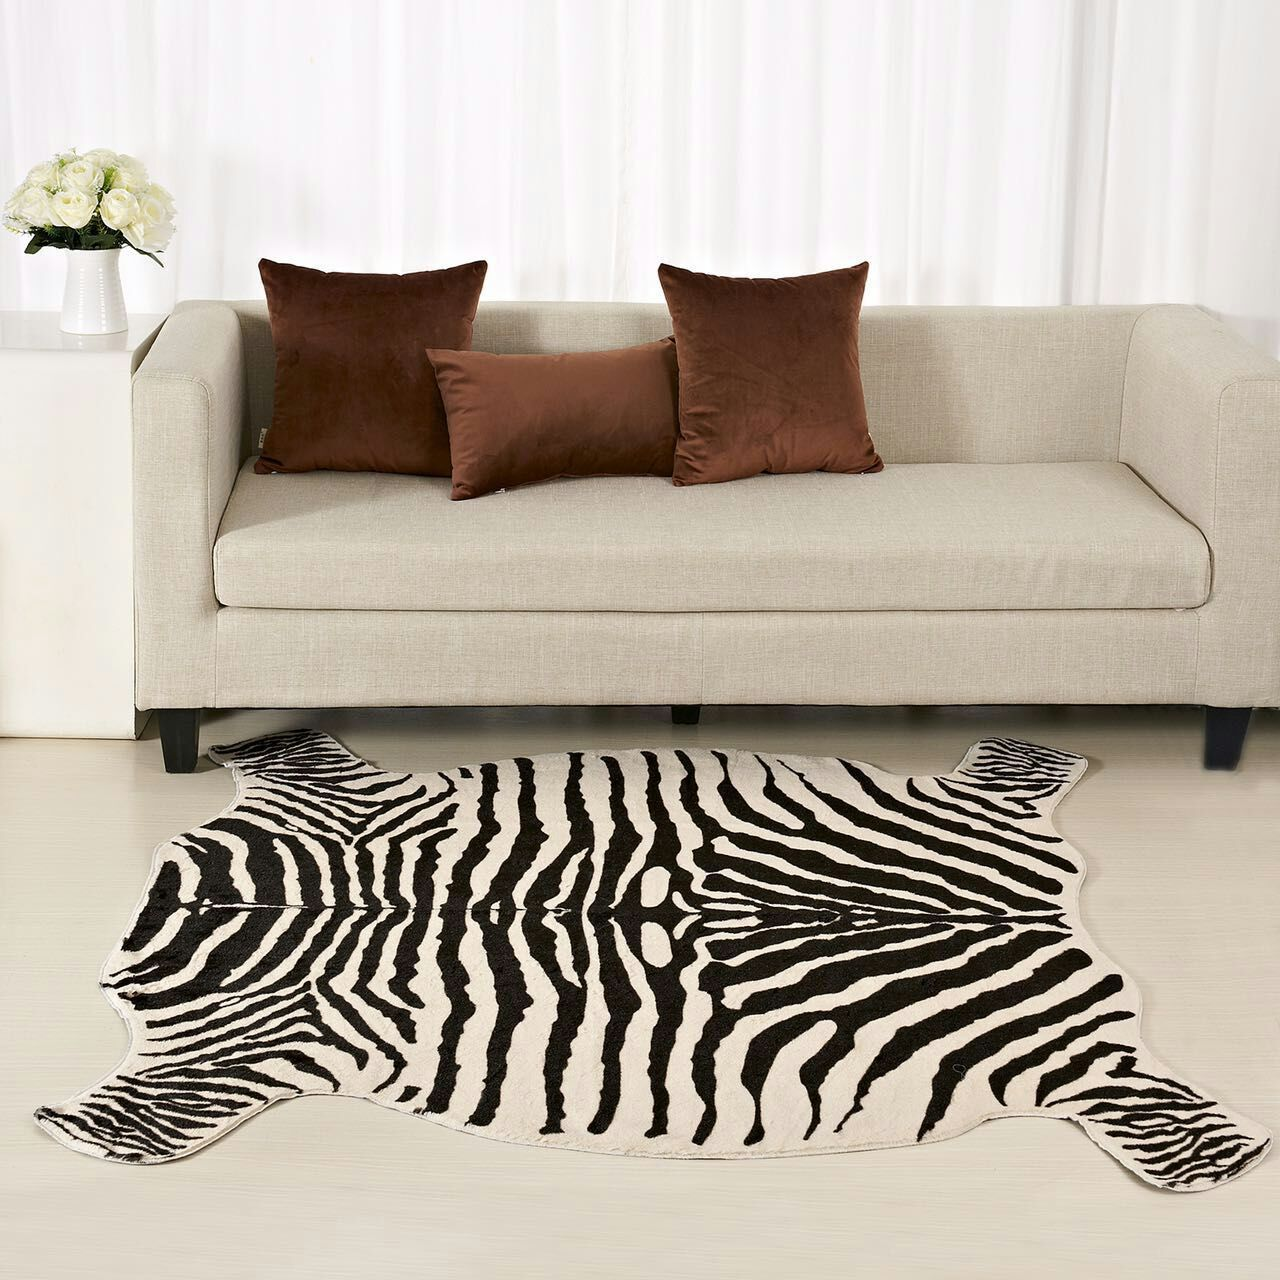 Cow / Zebra Rug and Carpet Cowboy Style Animal Faux Skin Cowhide ...